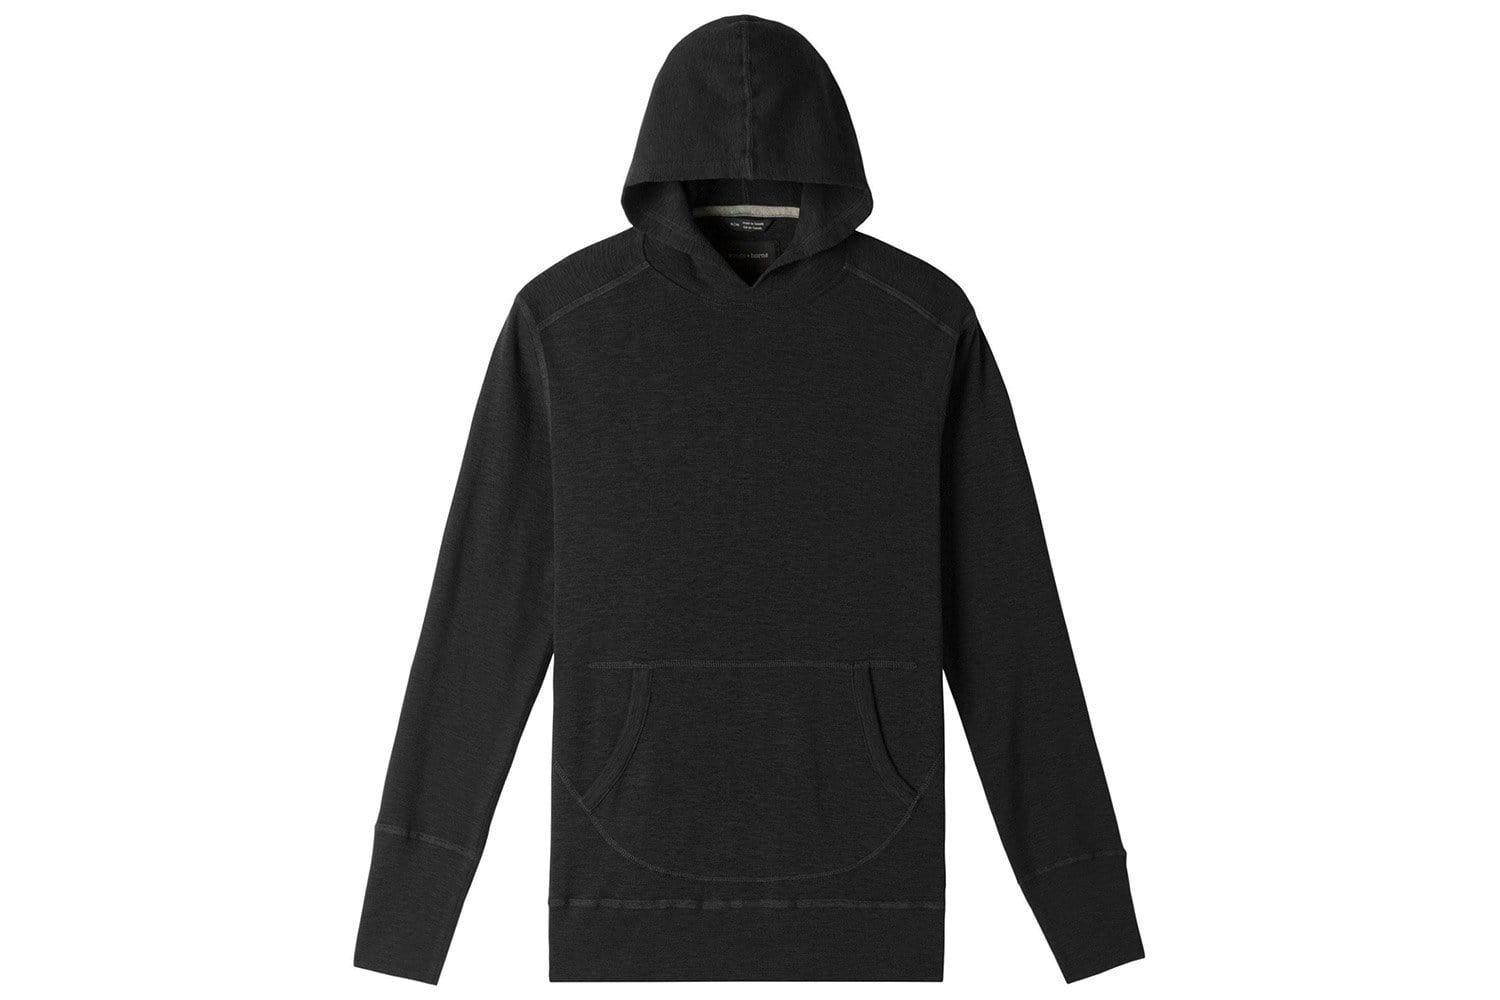 1X1 SLUB HOODED PULLOVER MENS SOFTGOODS WINGS+HORNS BLACK S